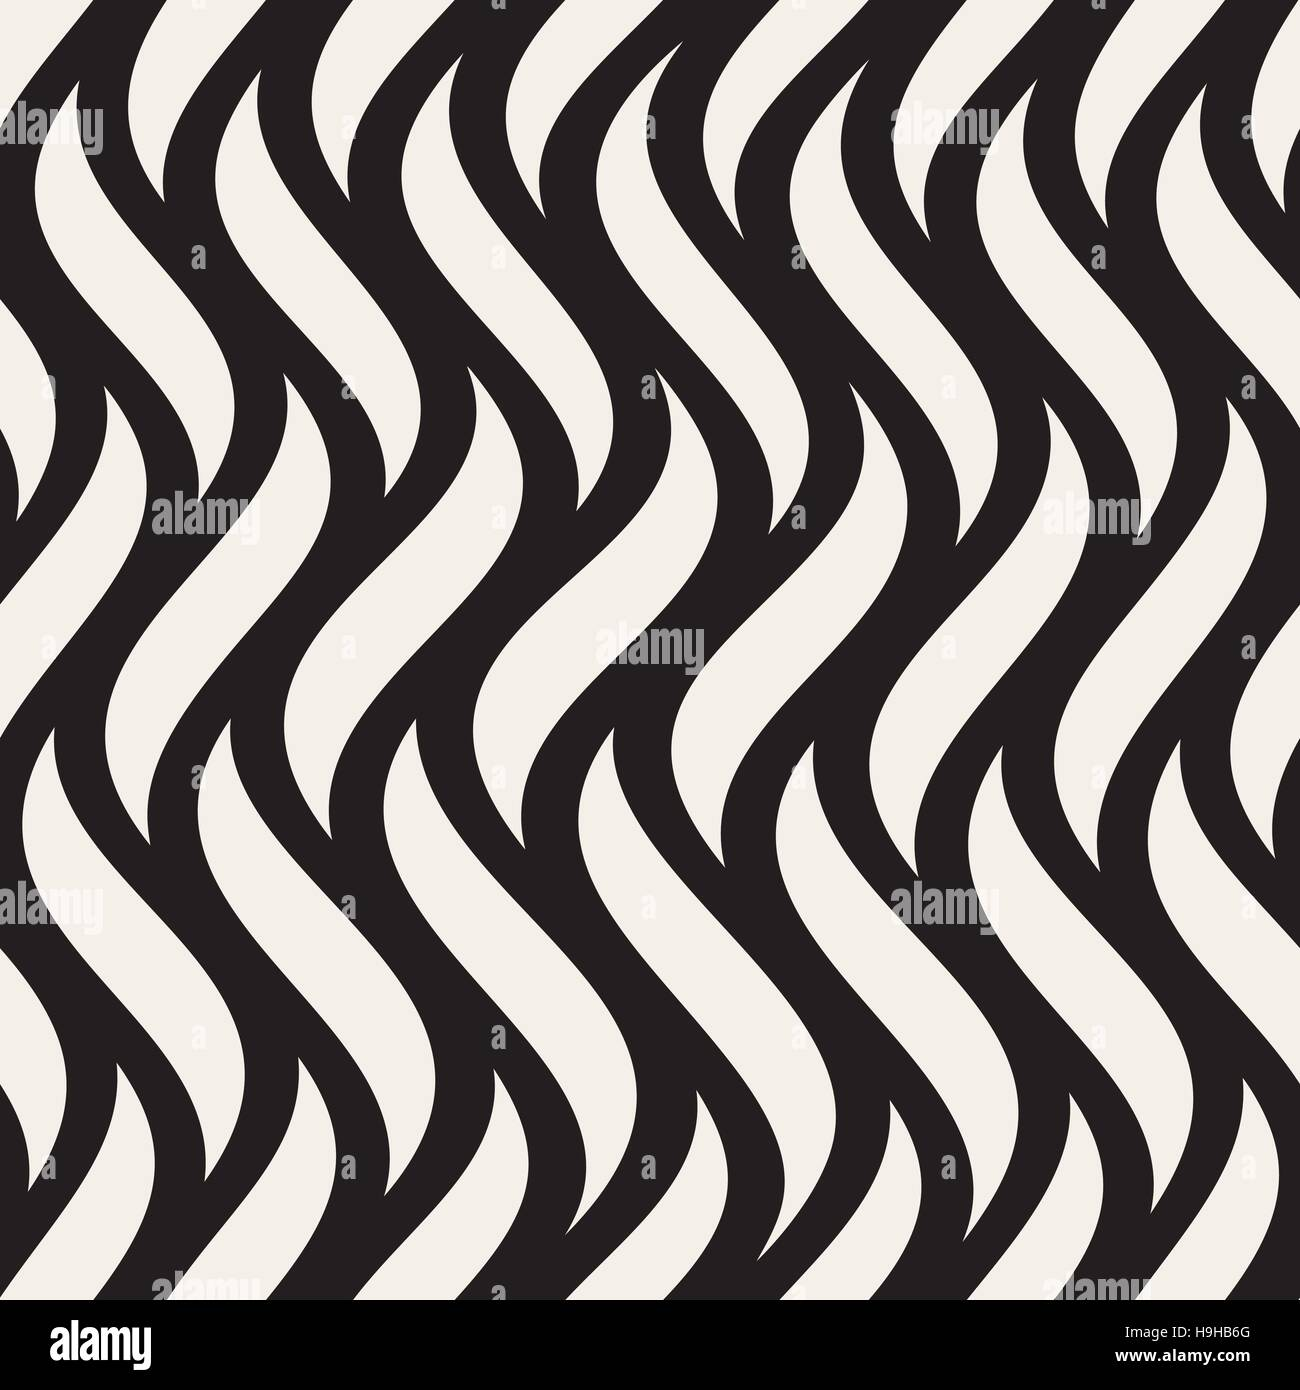 Vector Seamless Black And White Vertical Wavy Lines Pattern Stock Vector Art & Illustration